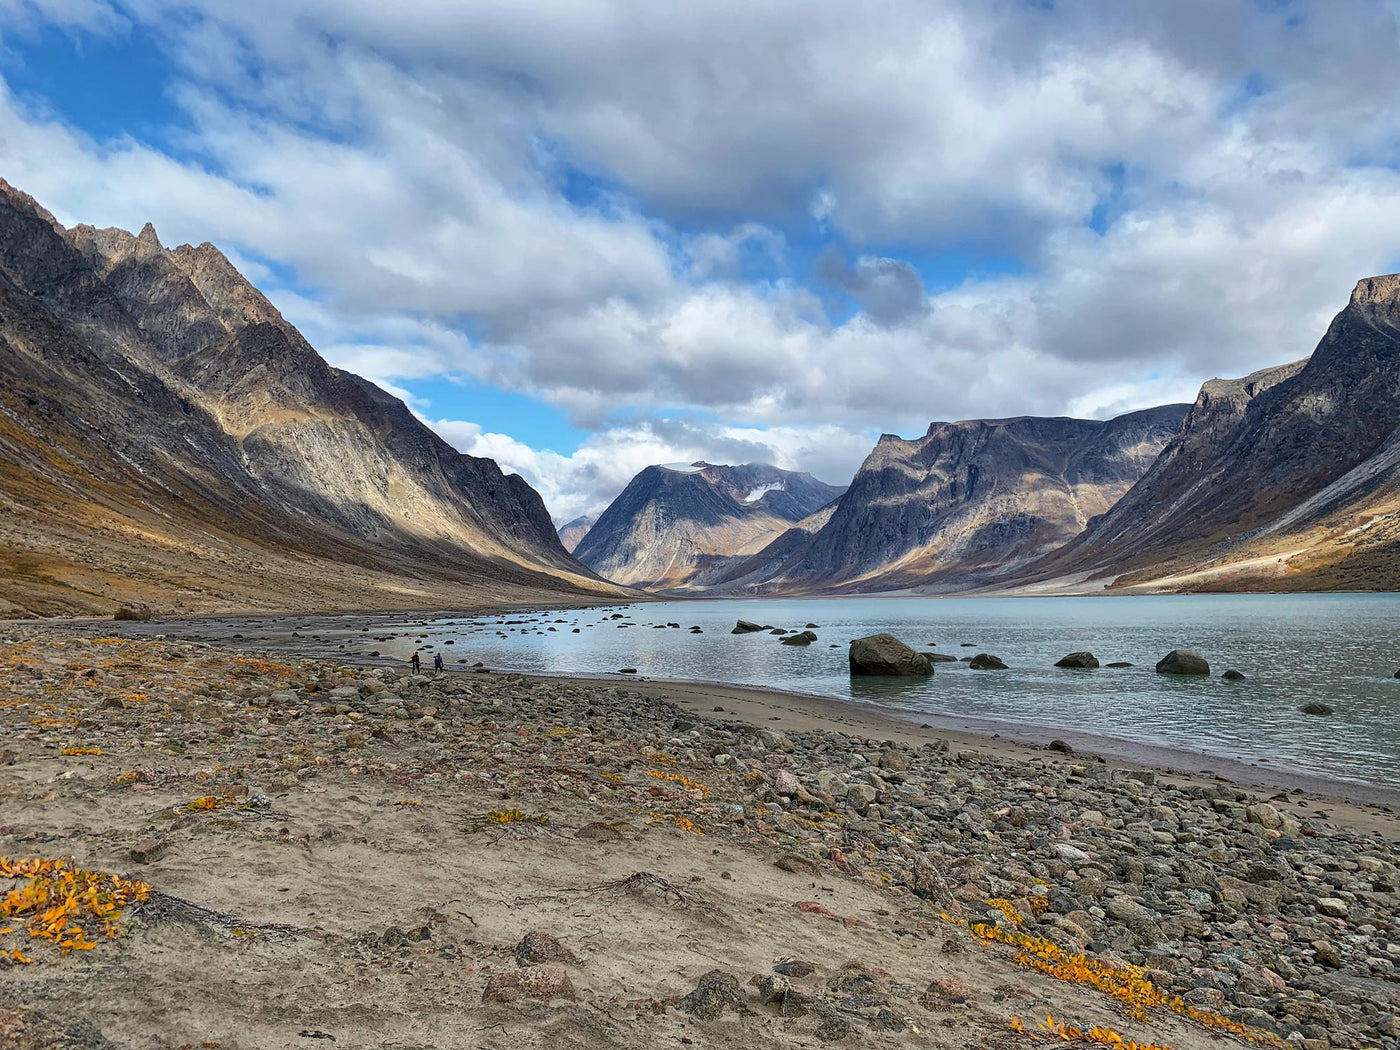 KapiK1 adventurers enjoy beautiful scenery on every expedition. This is Baffin Island.